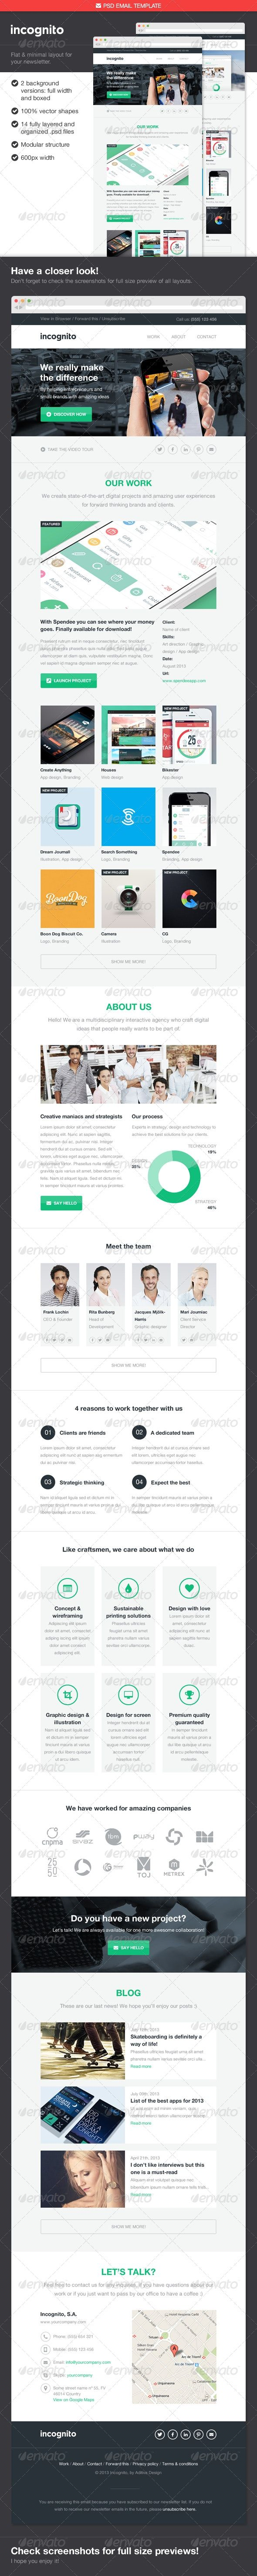 Incognito Psd Email Template Affiliate Psd Ad Incognito Template Email Email Templates Email Newsletter Design Computer Mockup